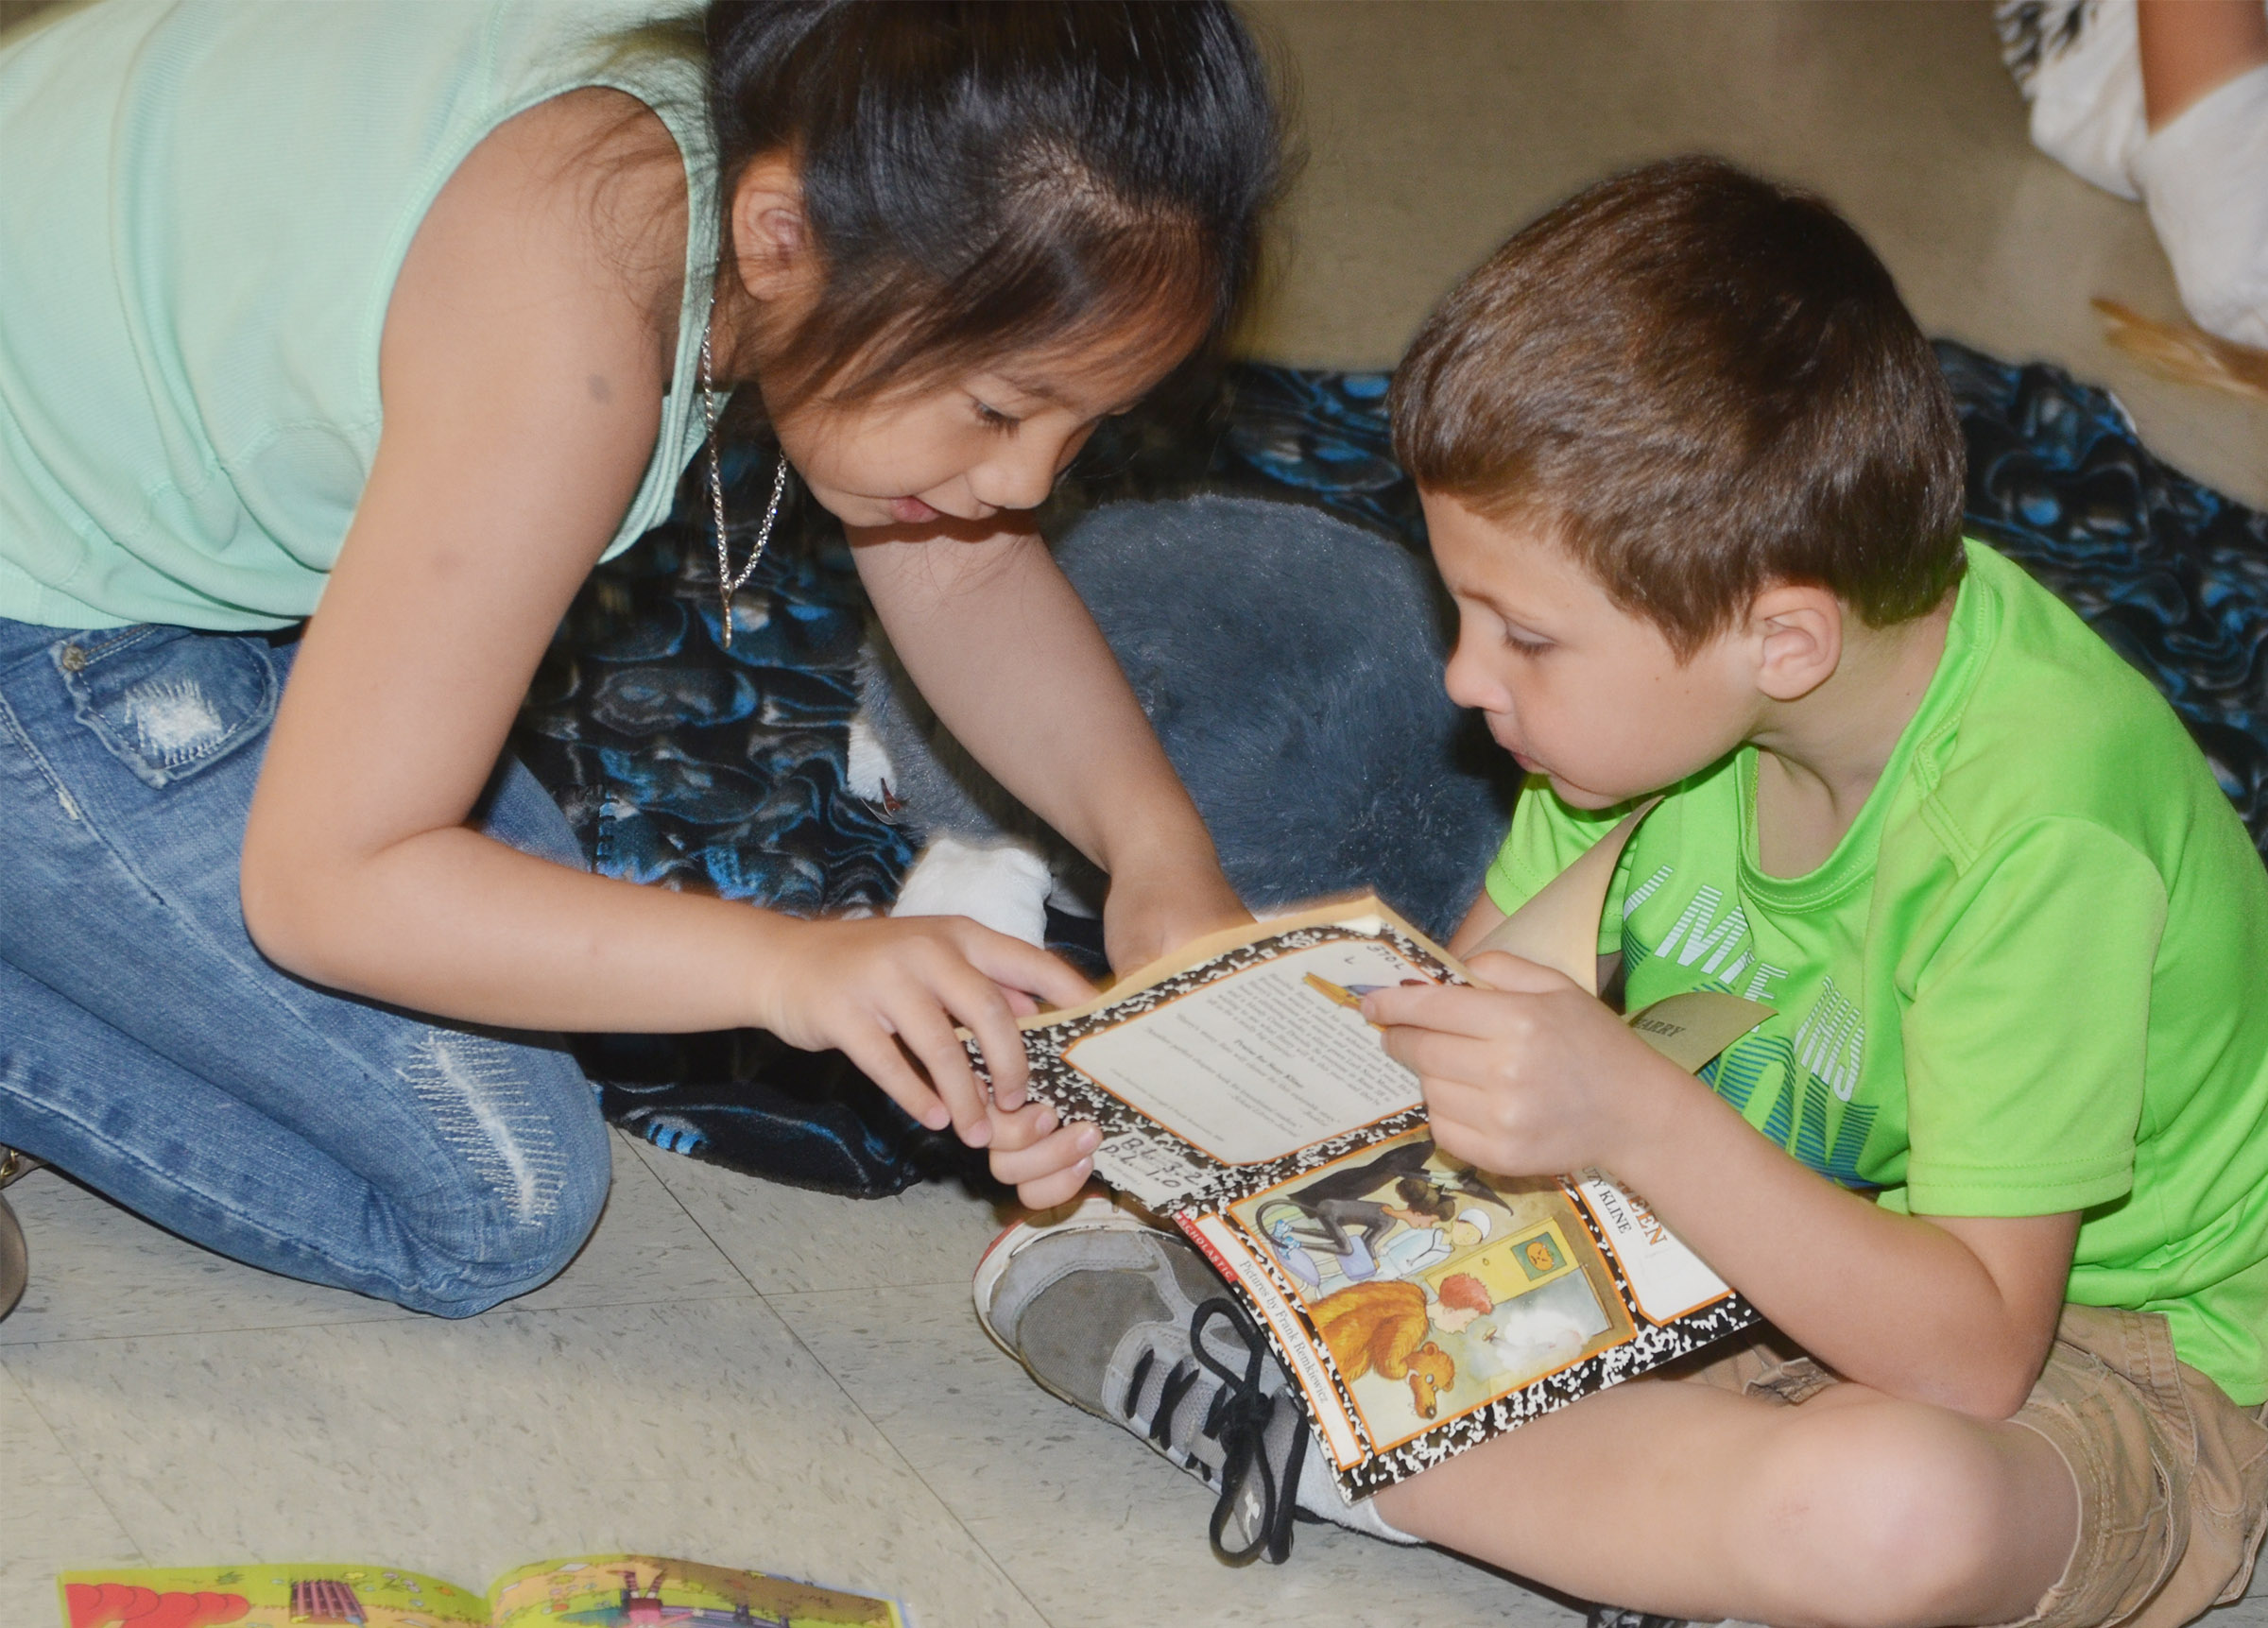 CES first-graders Tina Jiang, at left, and Bryson Gabehart read together.